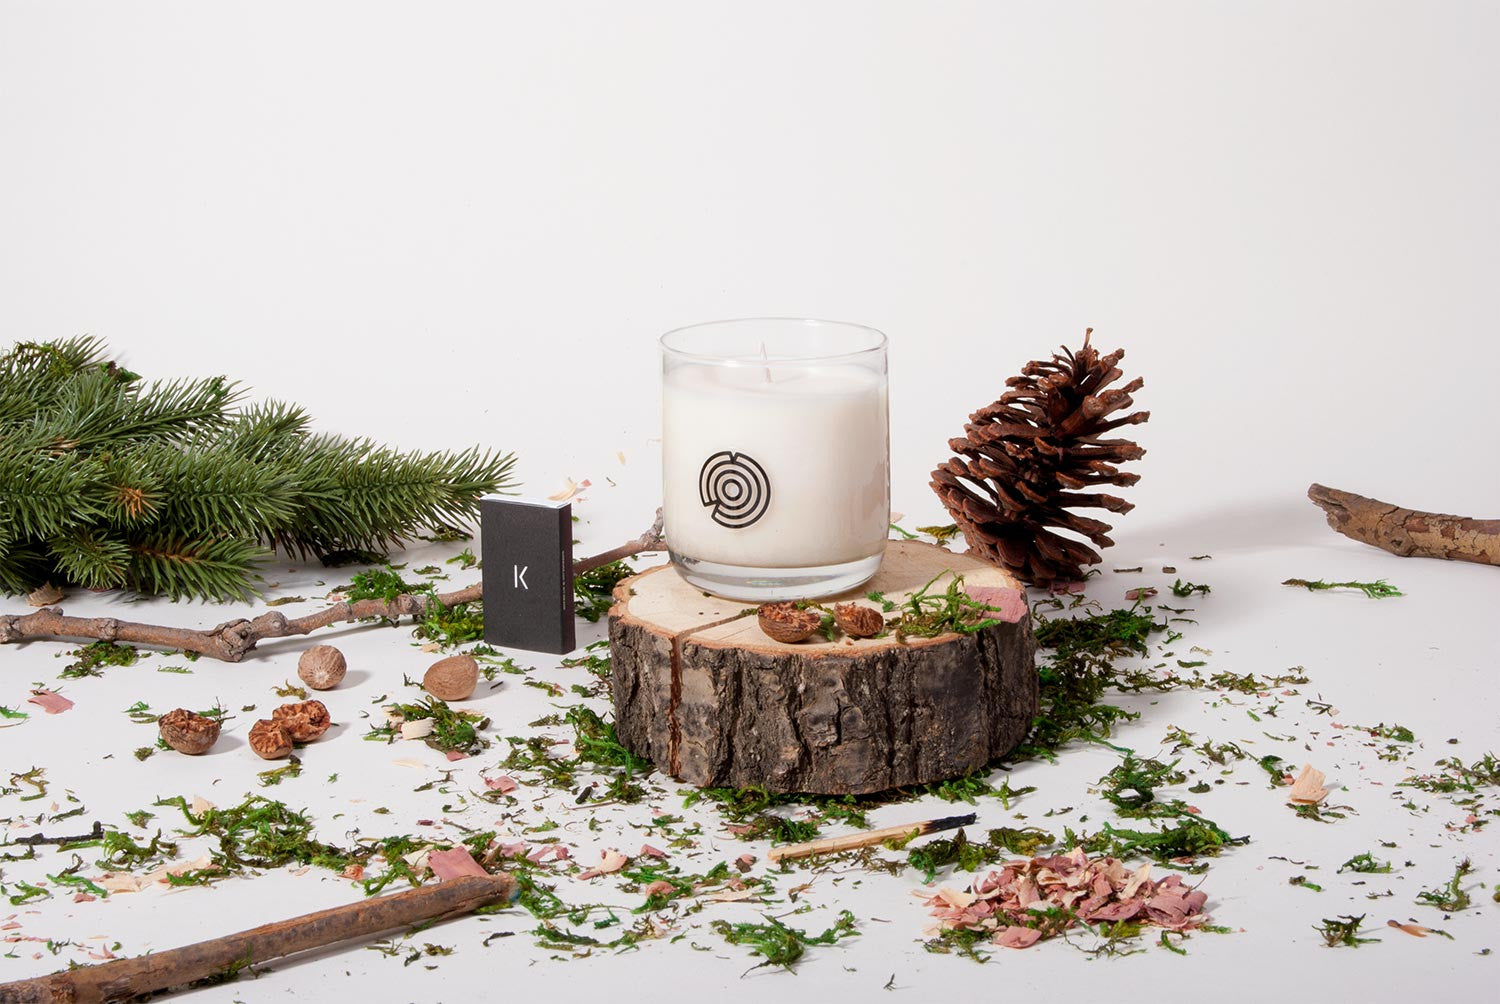 Hot Springs Coconut Wax Candle Keap